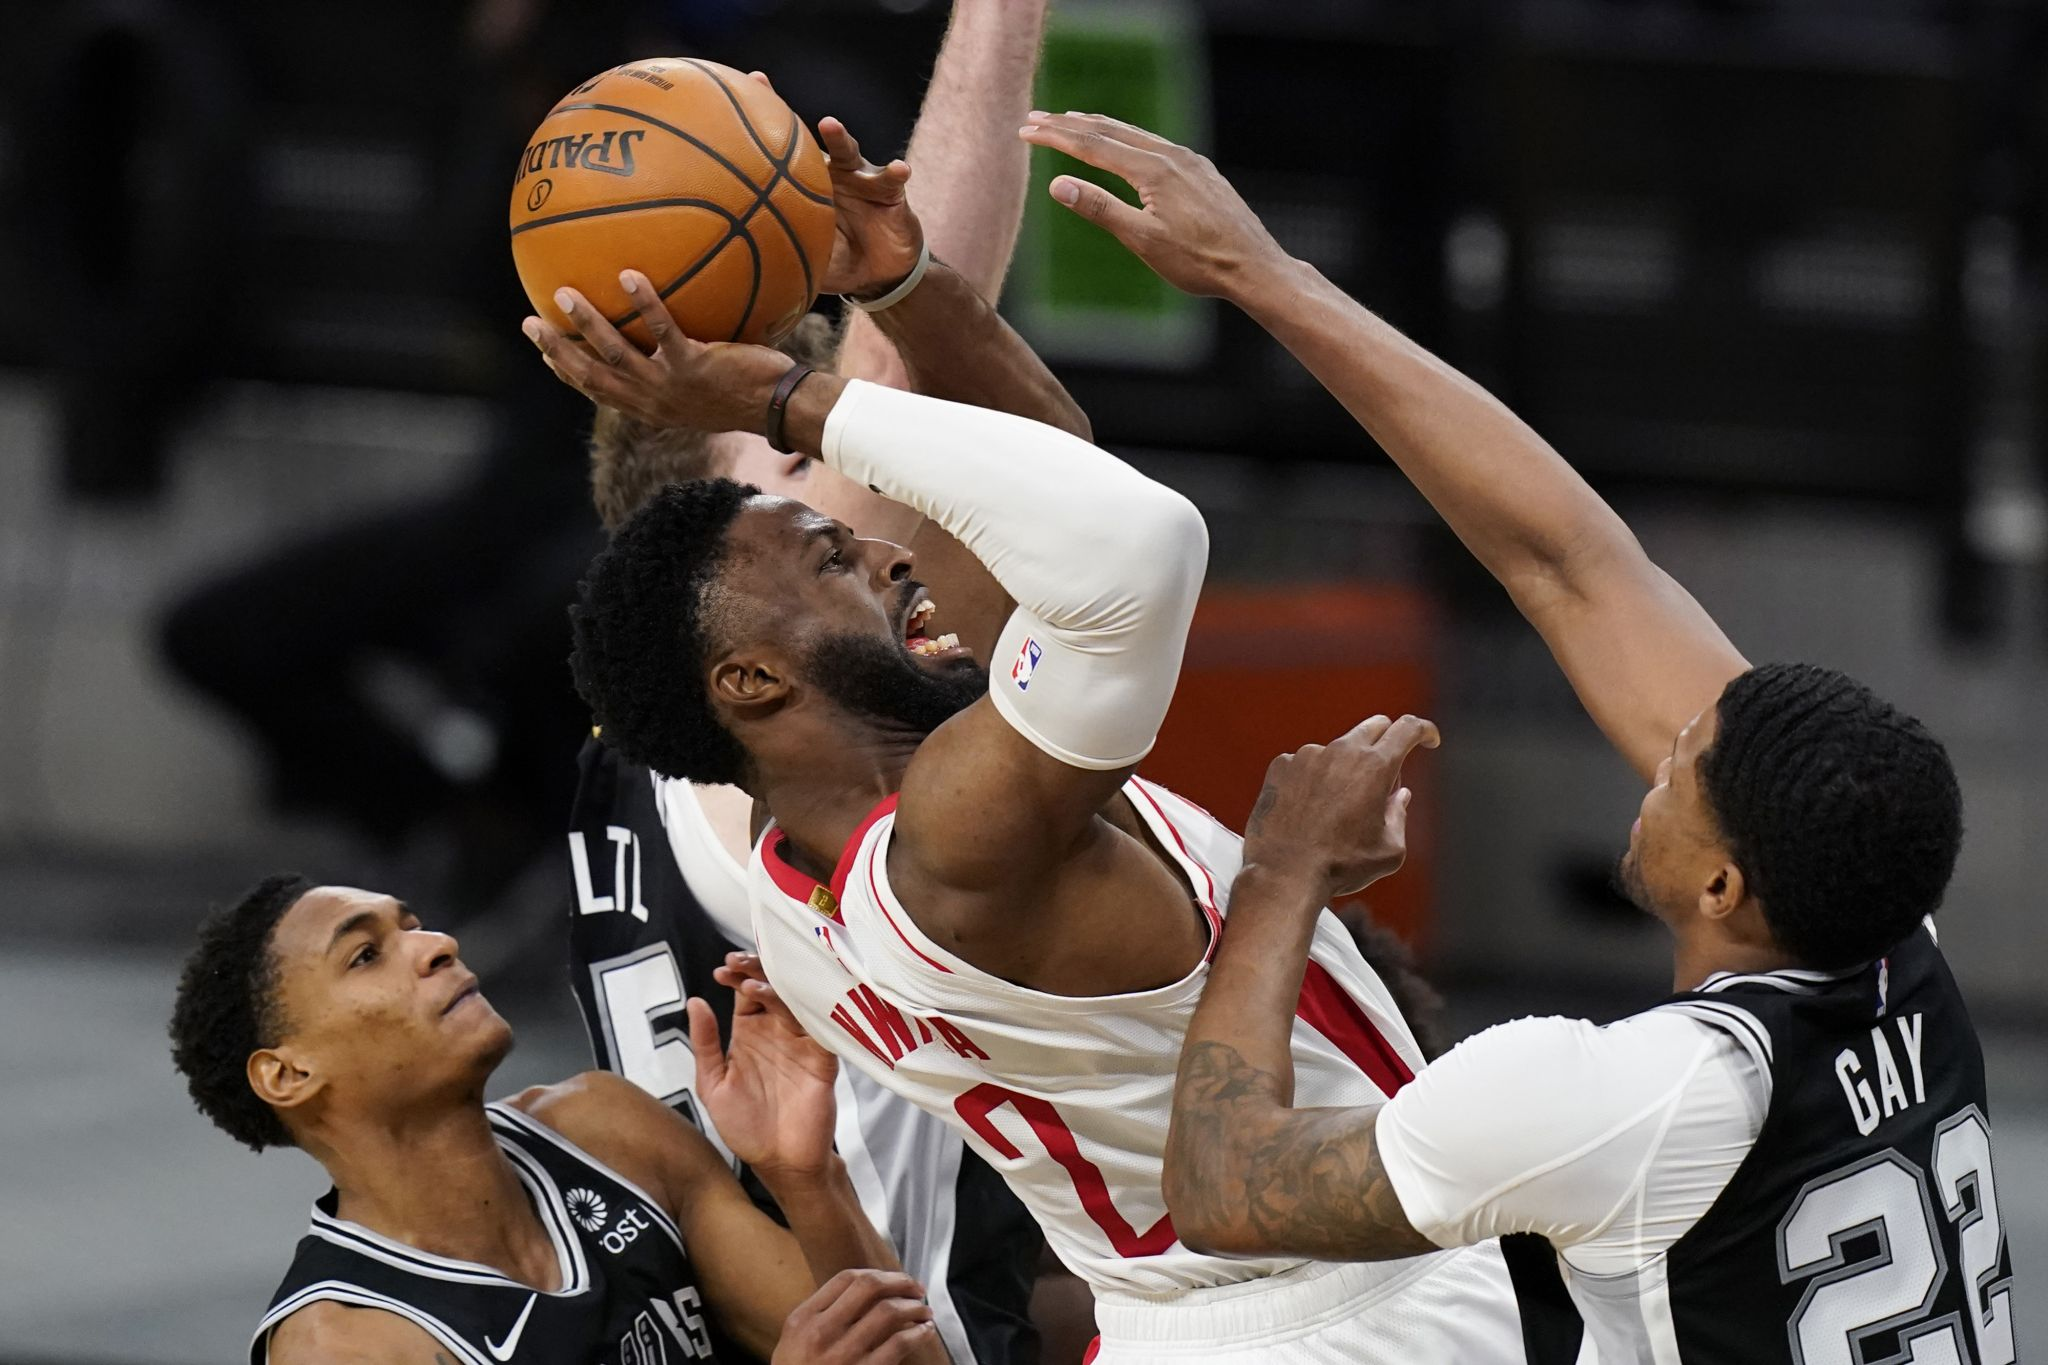 With trade amended, complete, Rockets have barely enough to play Spurs